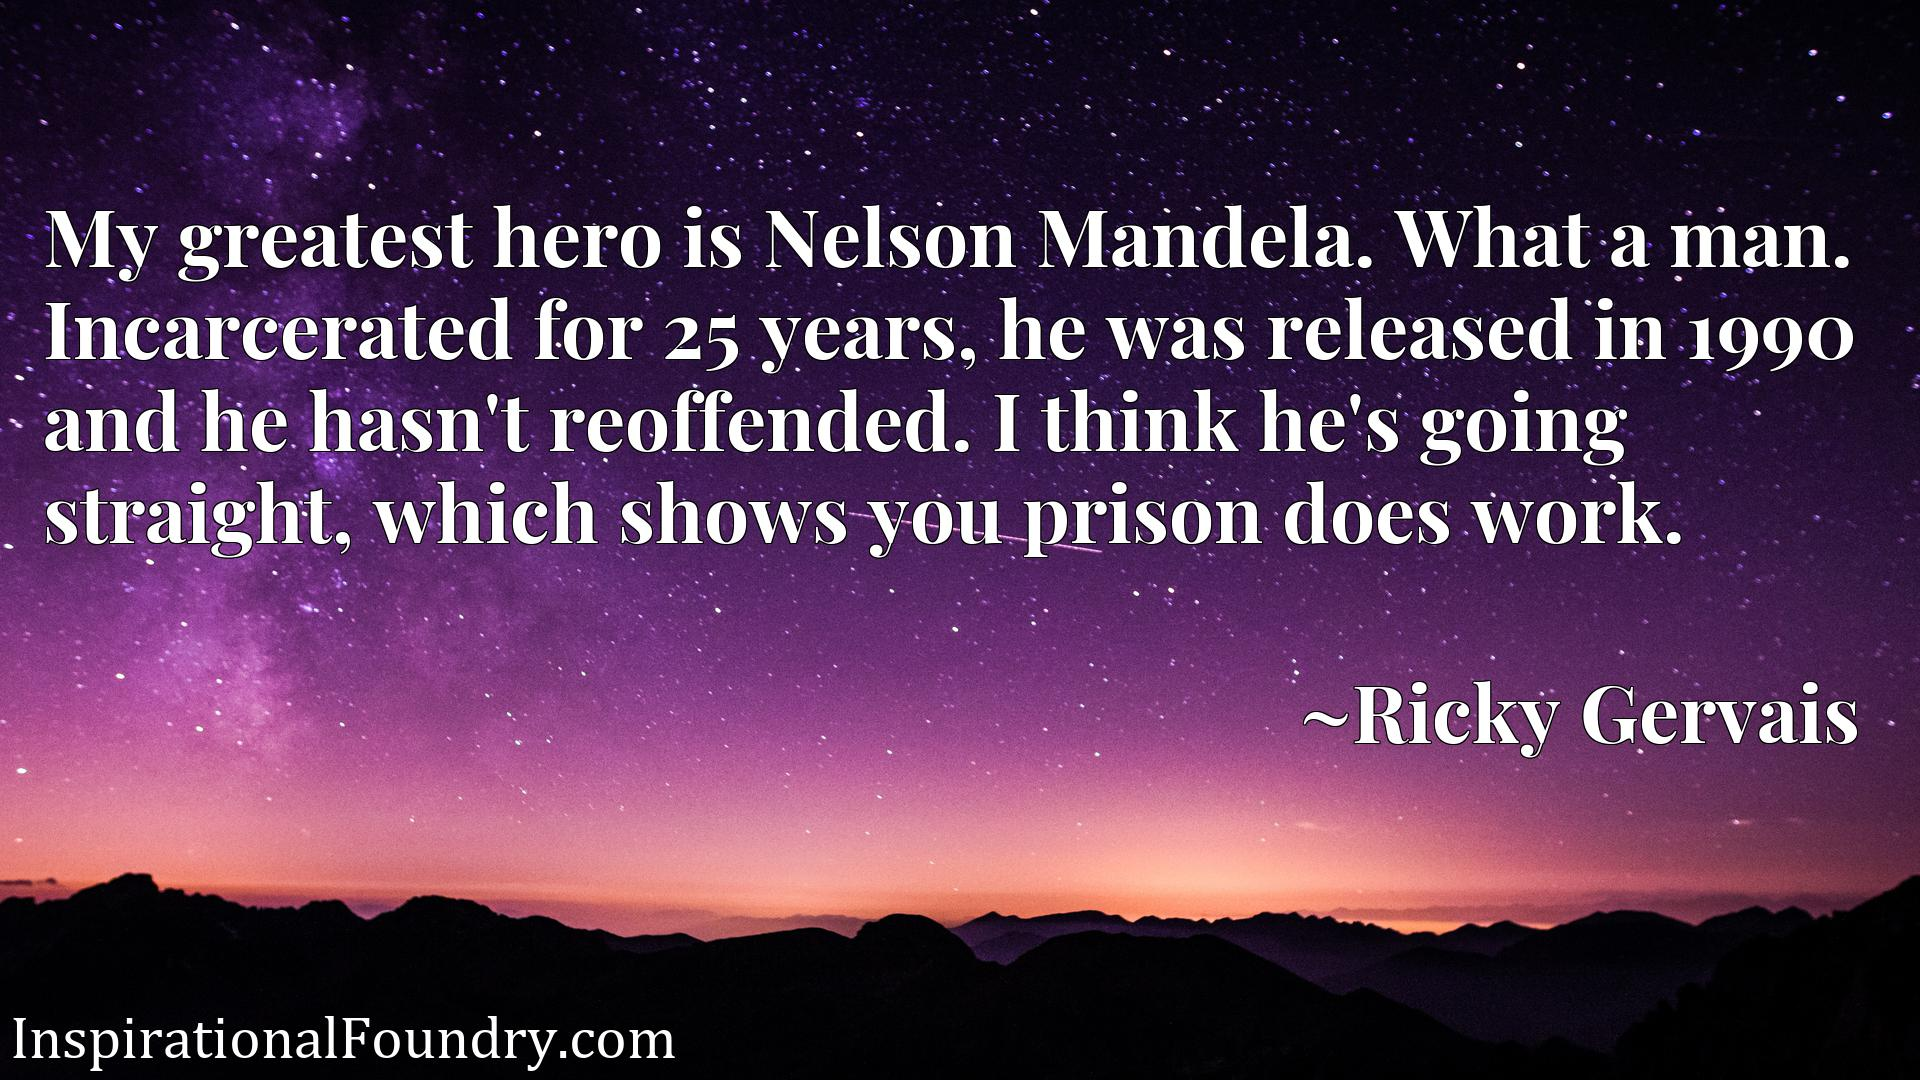 My greatest hero is Nelson Mandela. What a man. Incarcerated for 25 years, he was released in 1990 and he hasn't reoffended. I think he's going straight, which shows you prison does work.